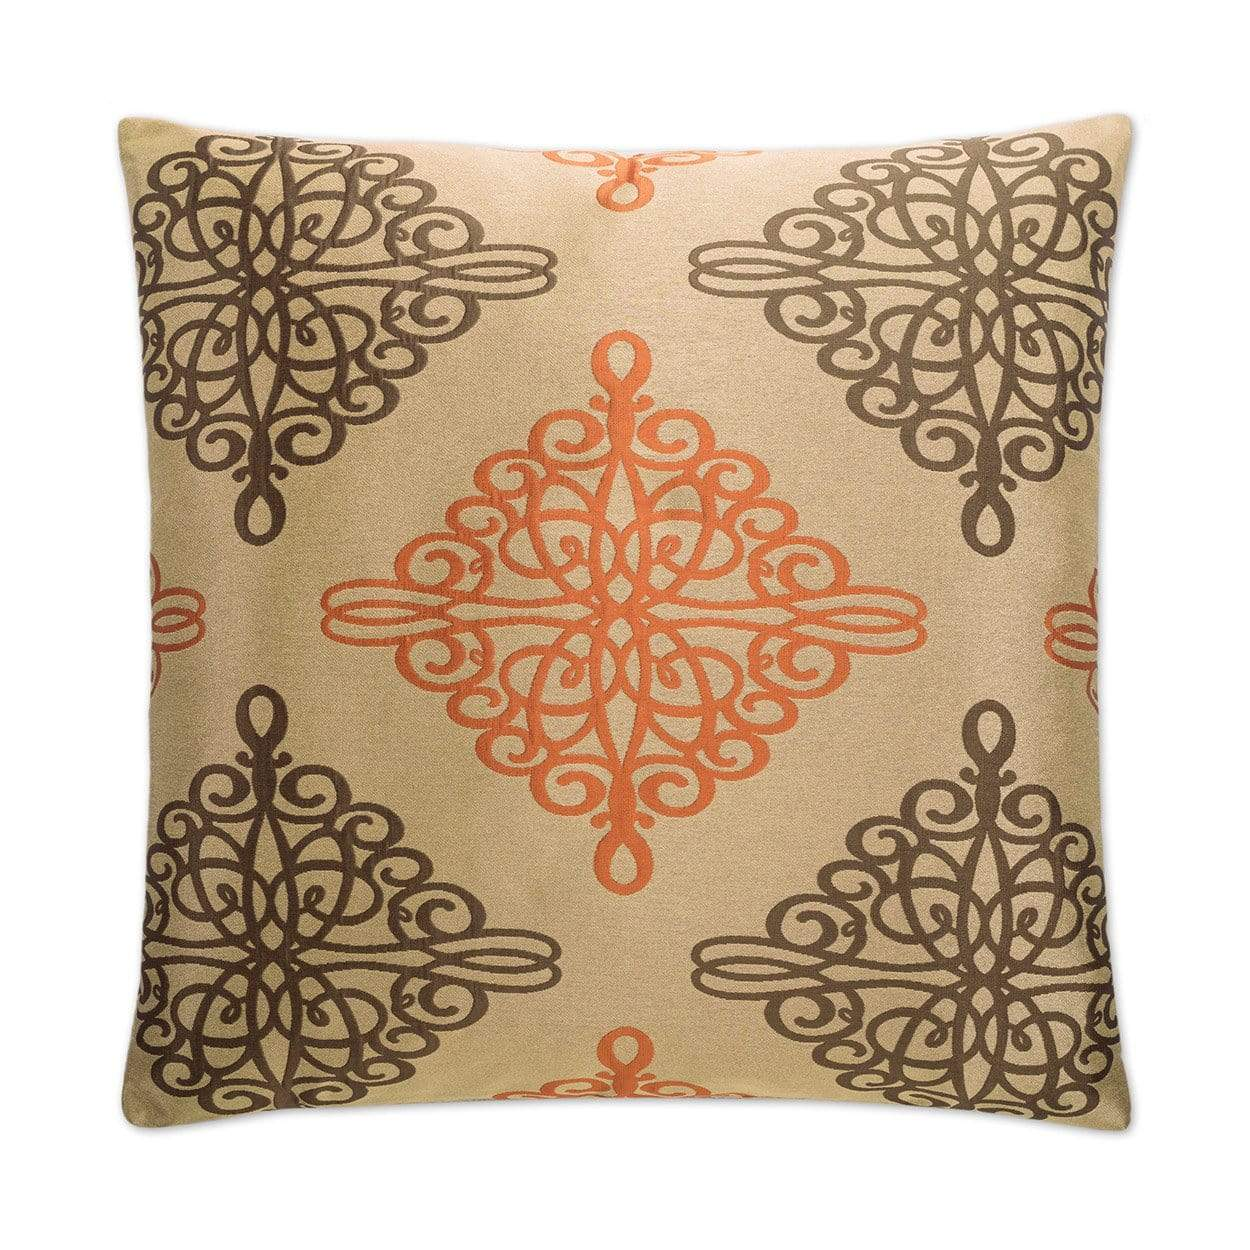 D.V. Kap D.V. Kap Ayers Pillow Copper 2367-C